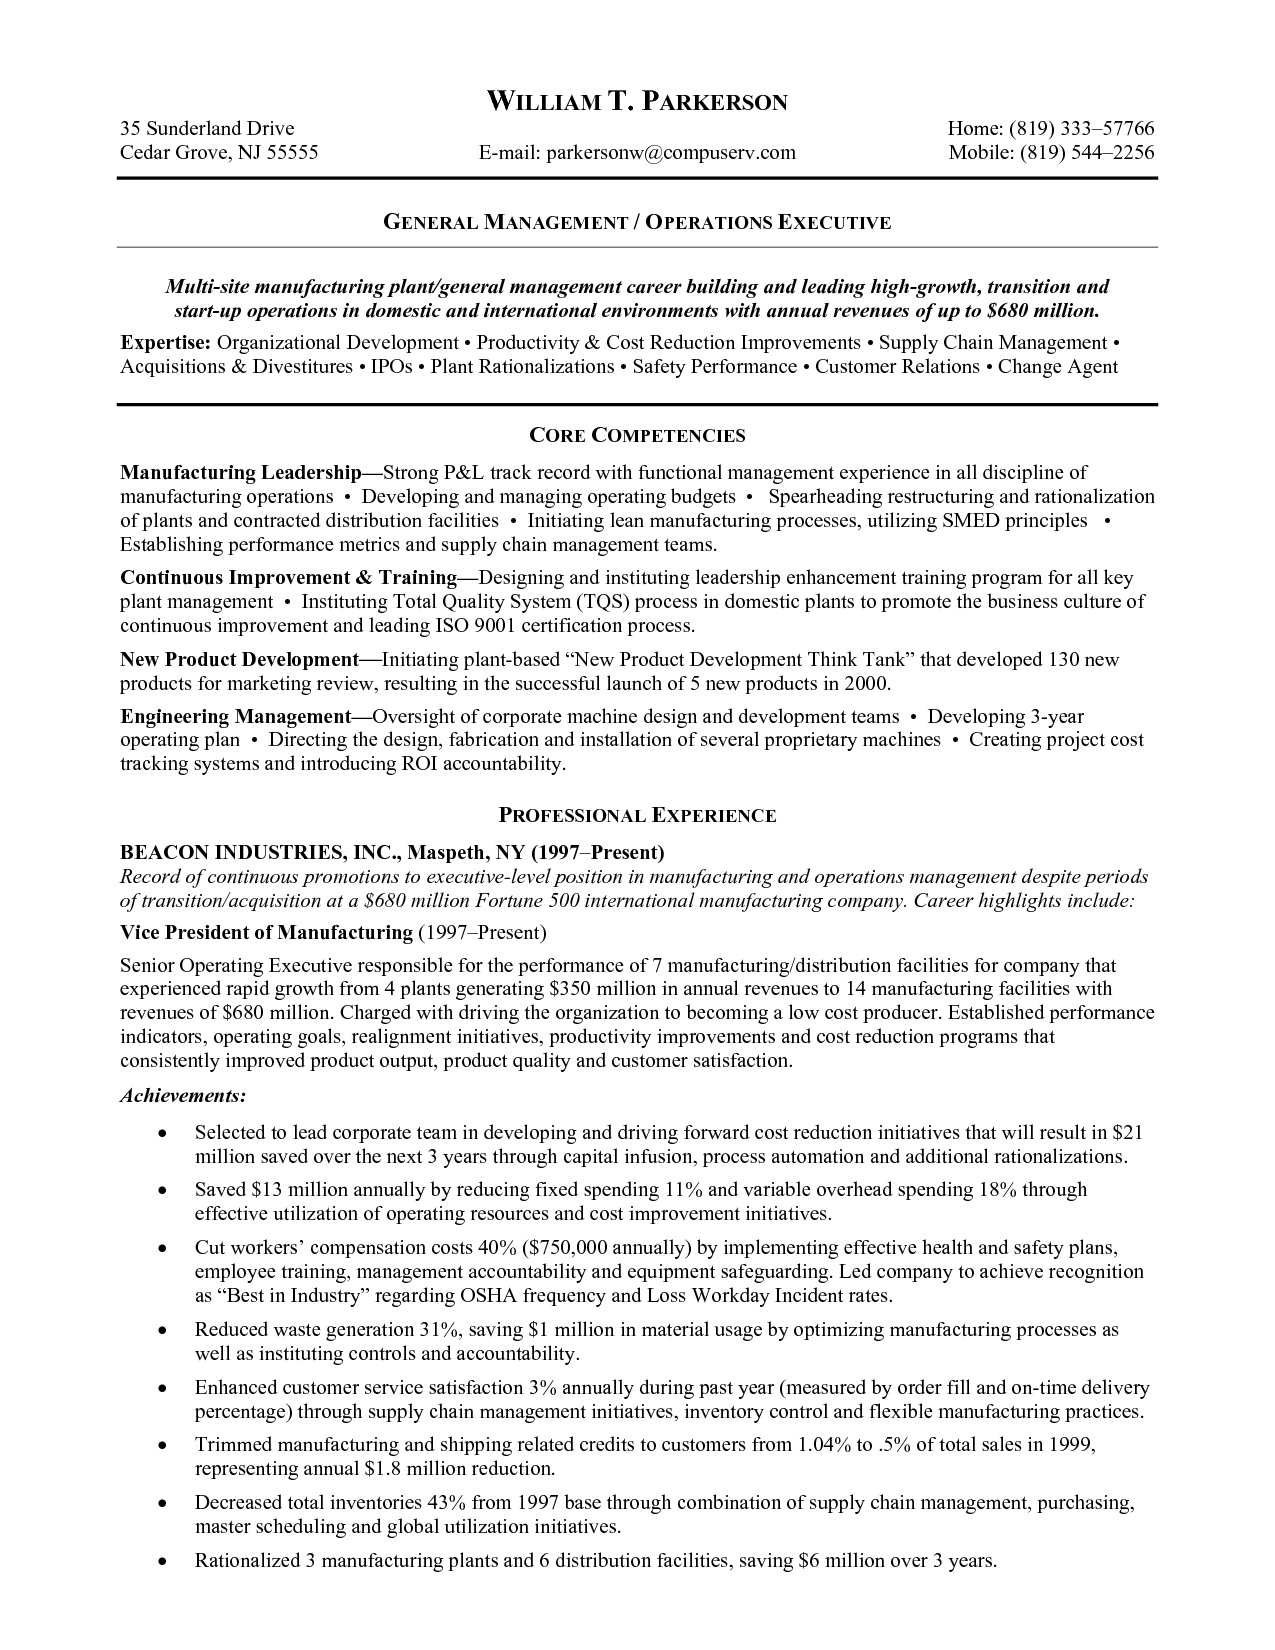 Samples Of Resume Objectives General Manufacturing Resume Samples Objective Examples Free Edit